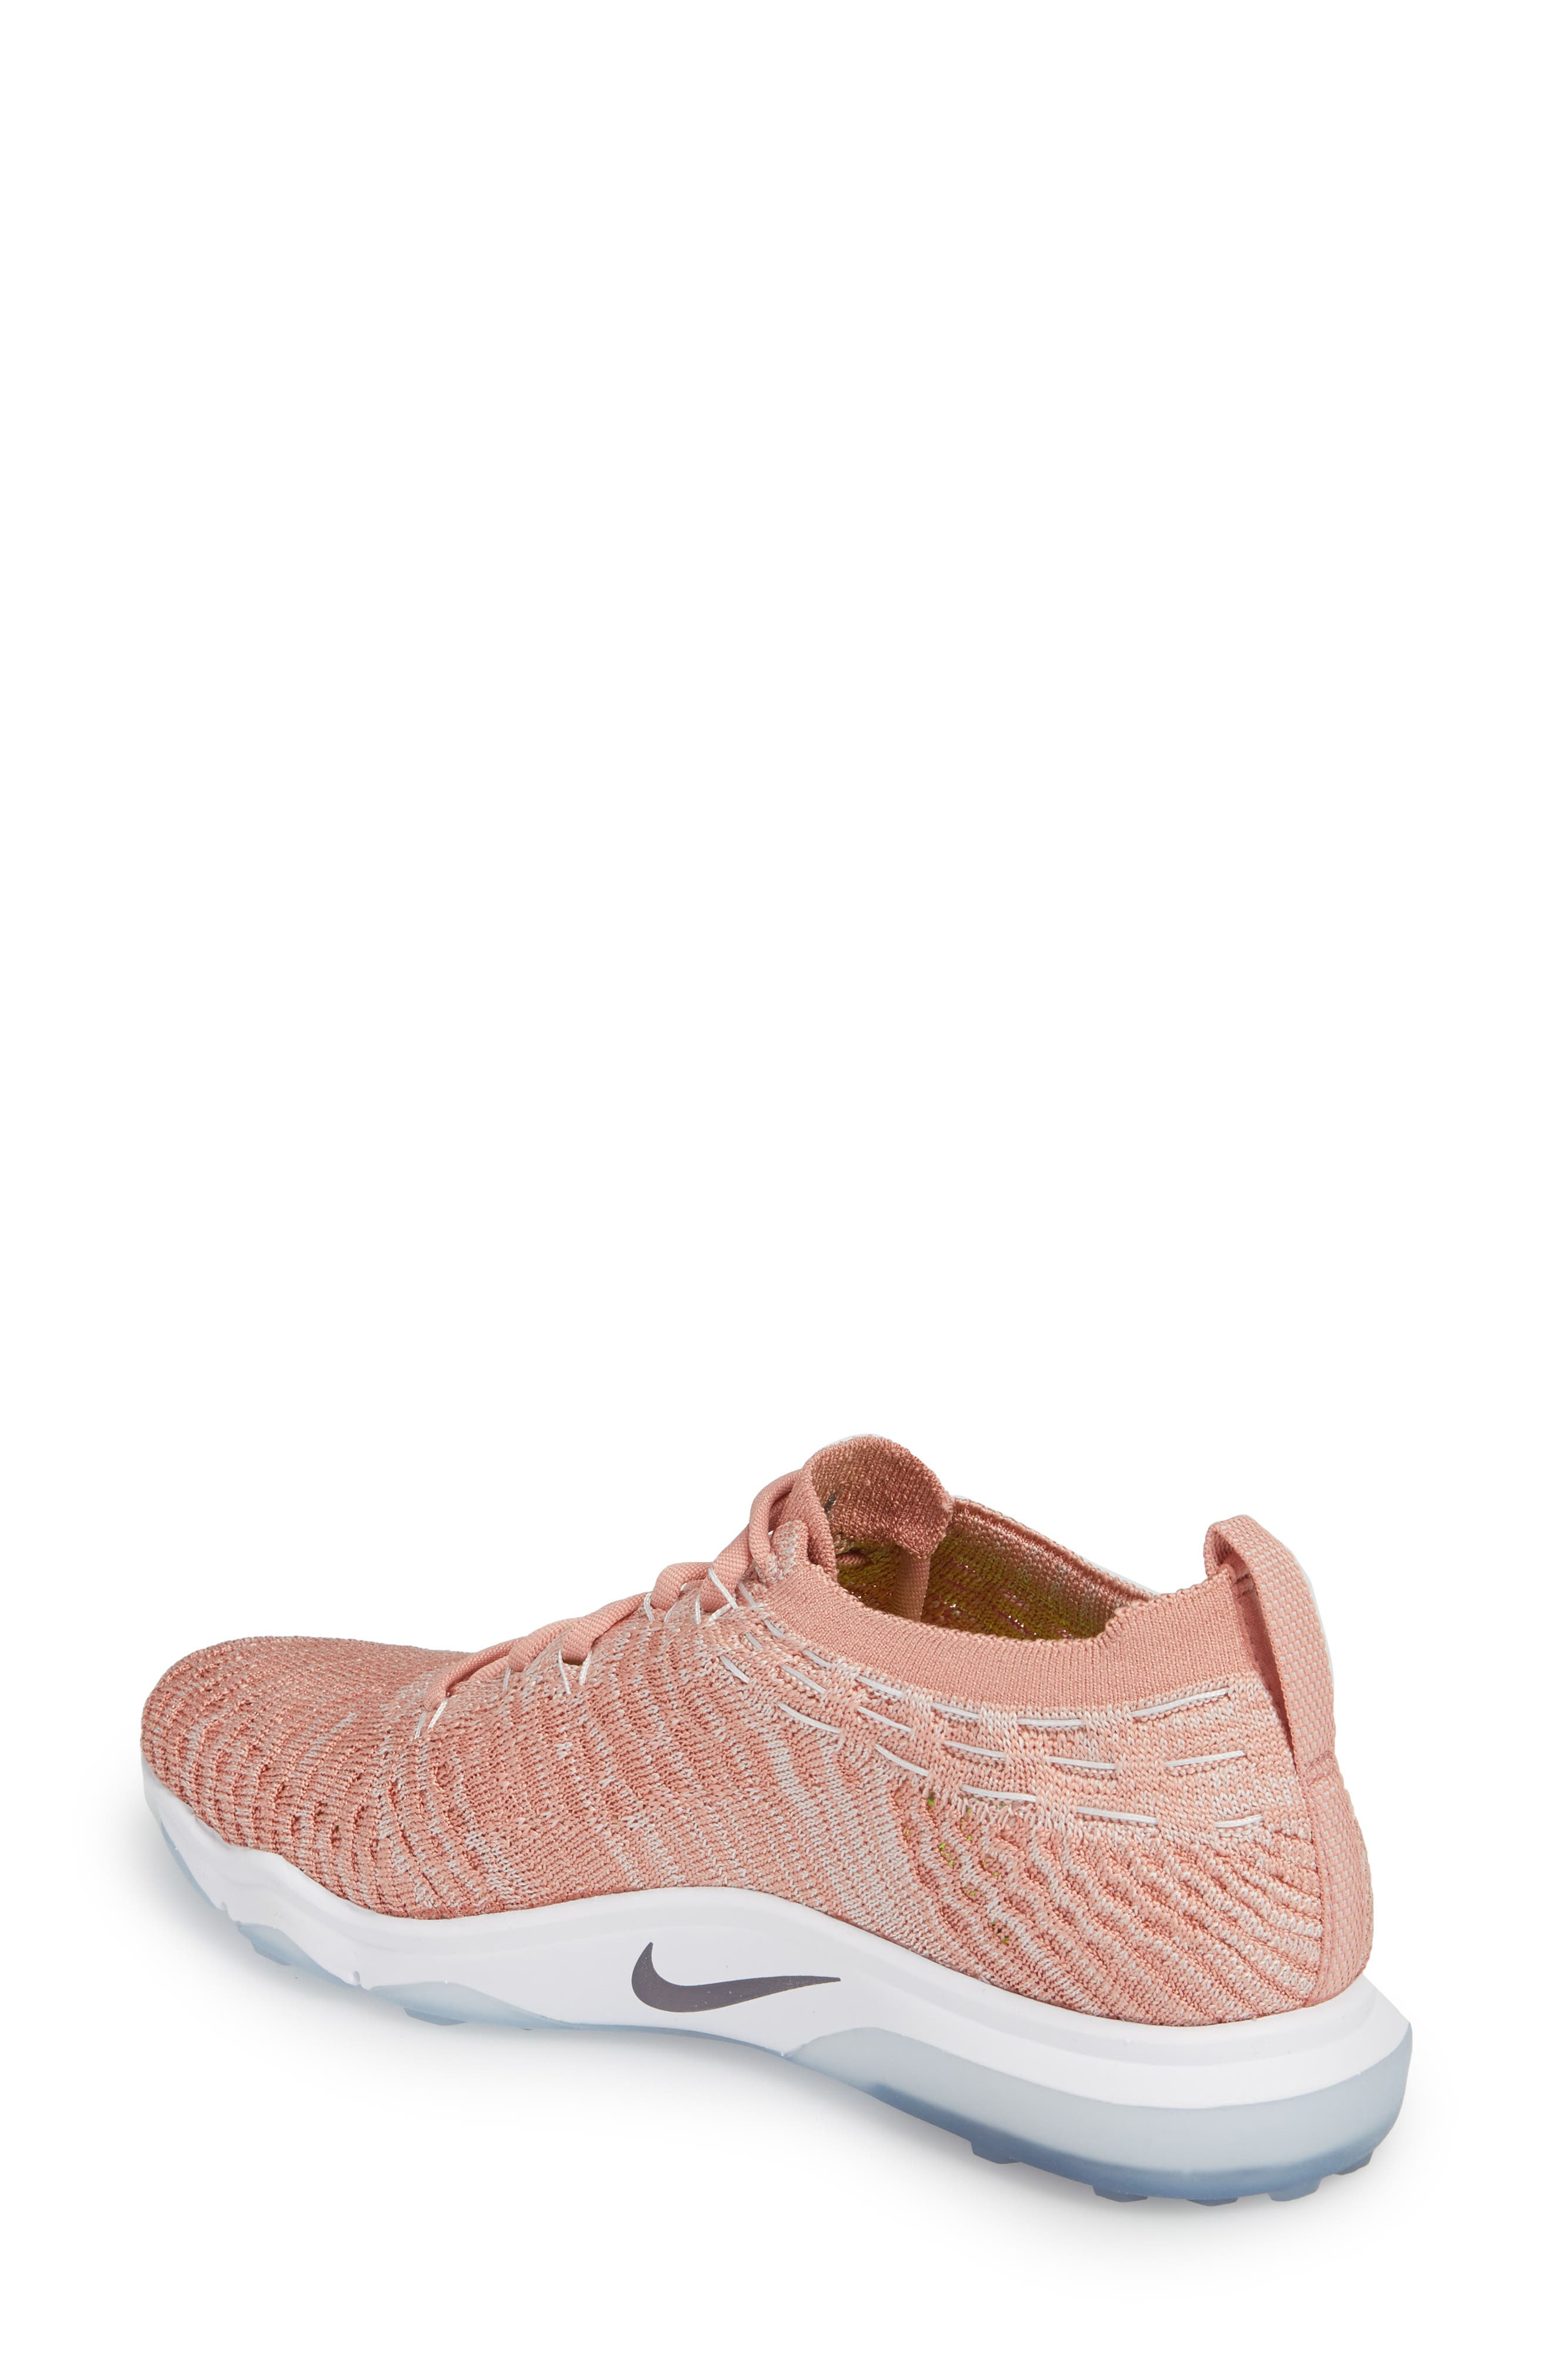 Air Zoom Fearless Flyknit Lux Training Shoe,                             Alternate thumbnail 7, color,